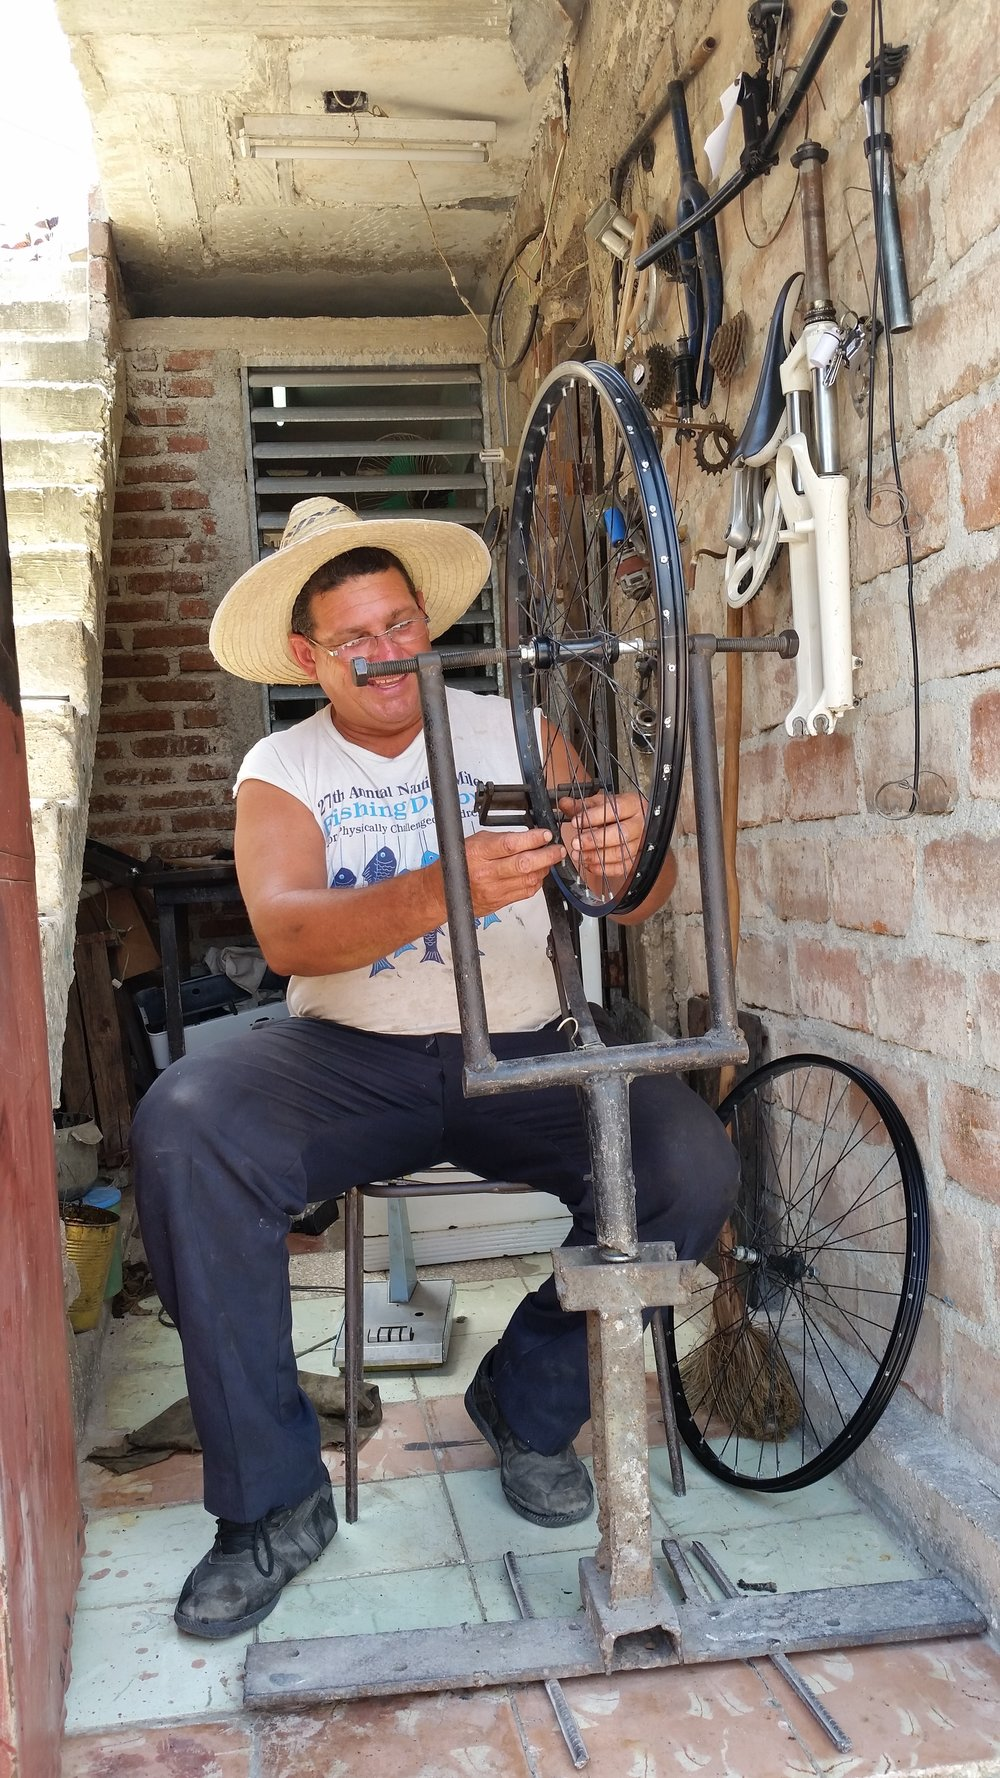 The owner of a small bike shop in Holguin, Cuba.